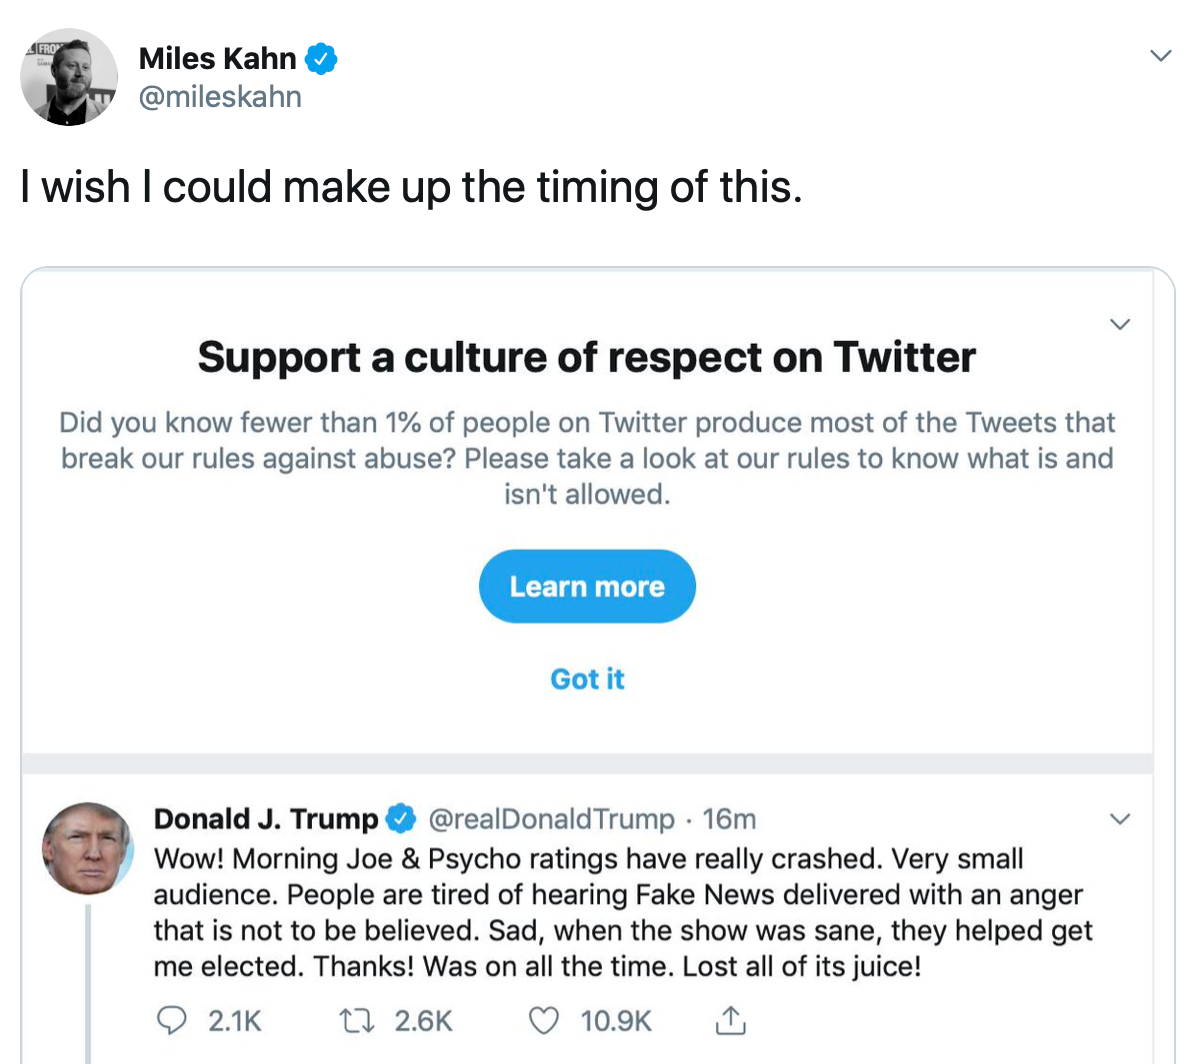 A screenshot from Twitter juxtaposing its effort to improve the dialog with a Donald Trump Tweet